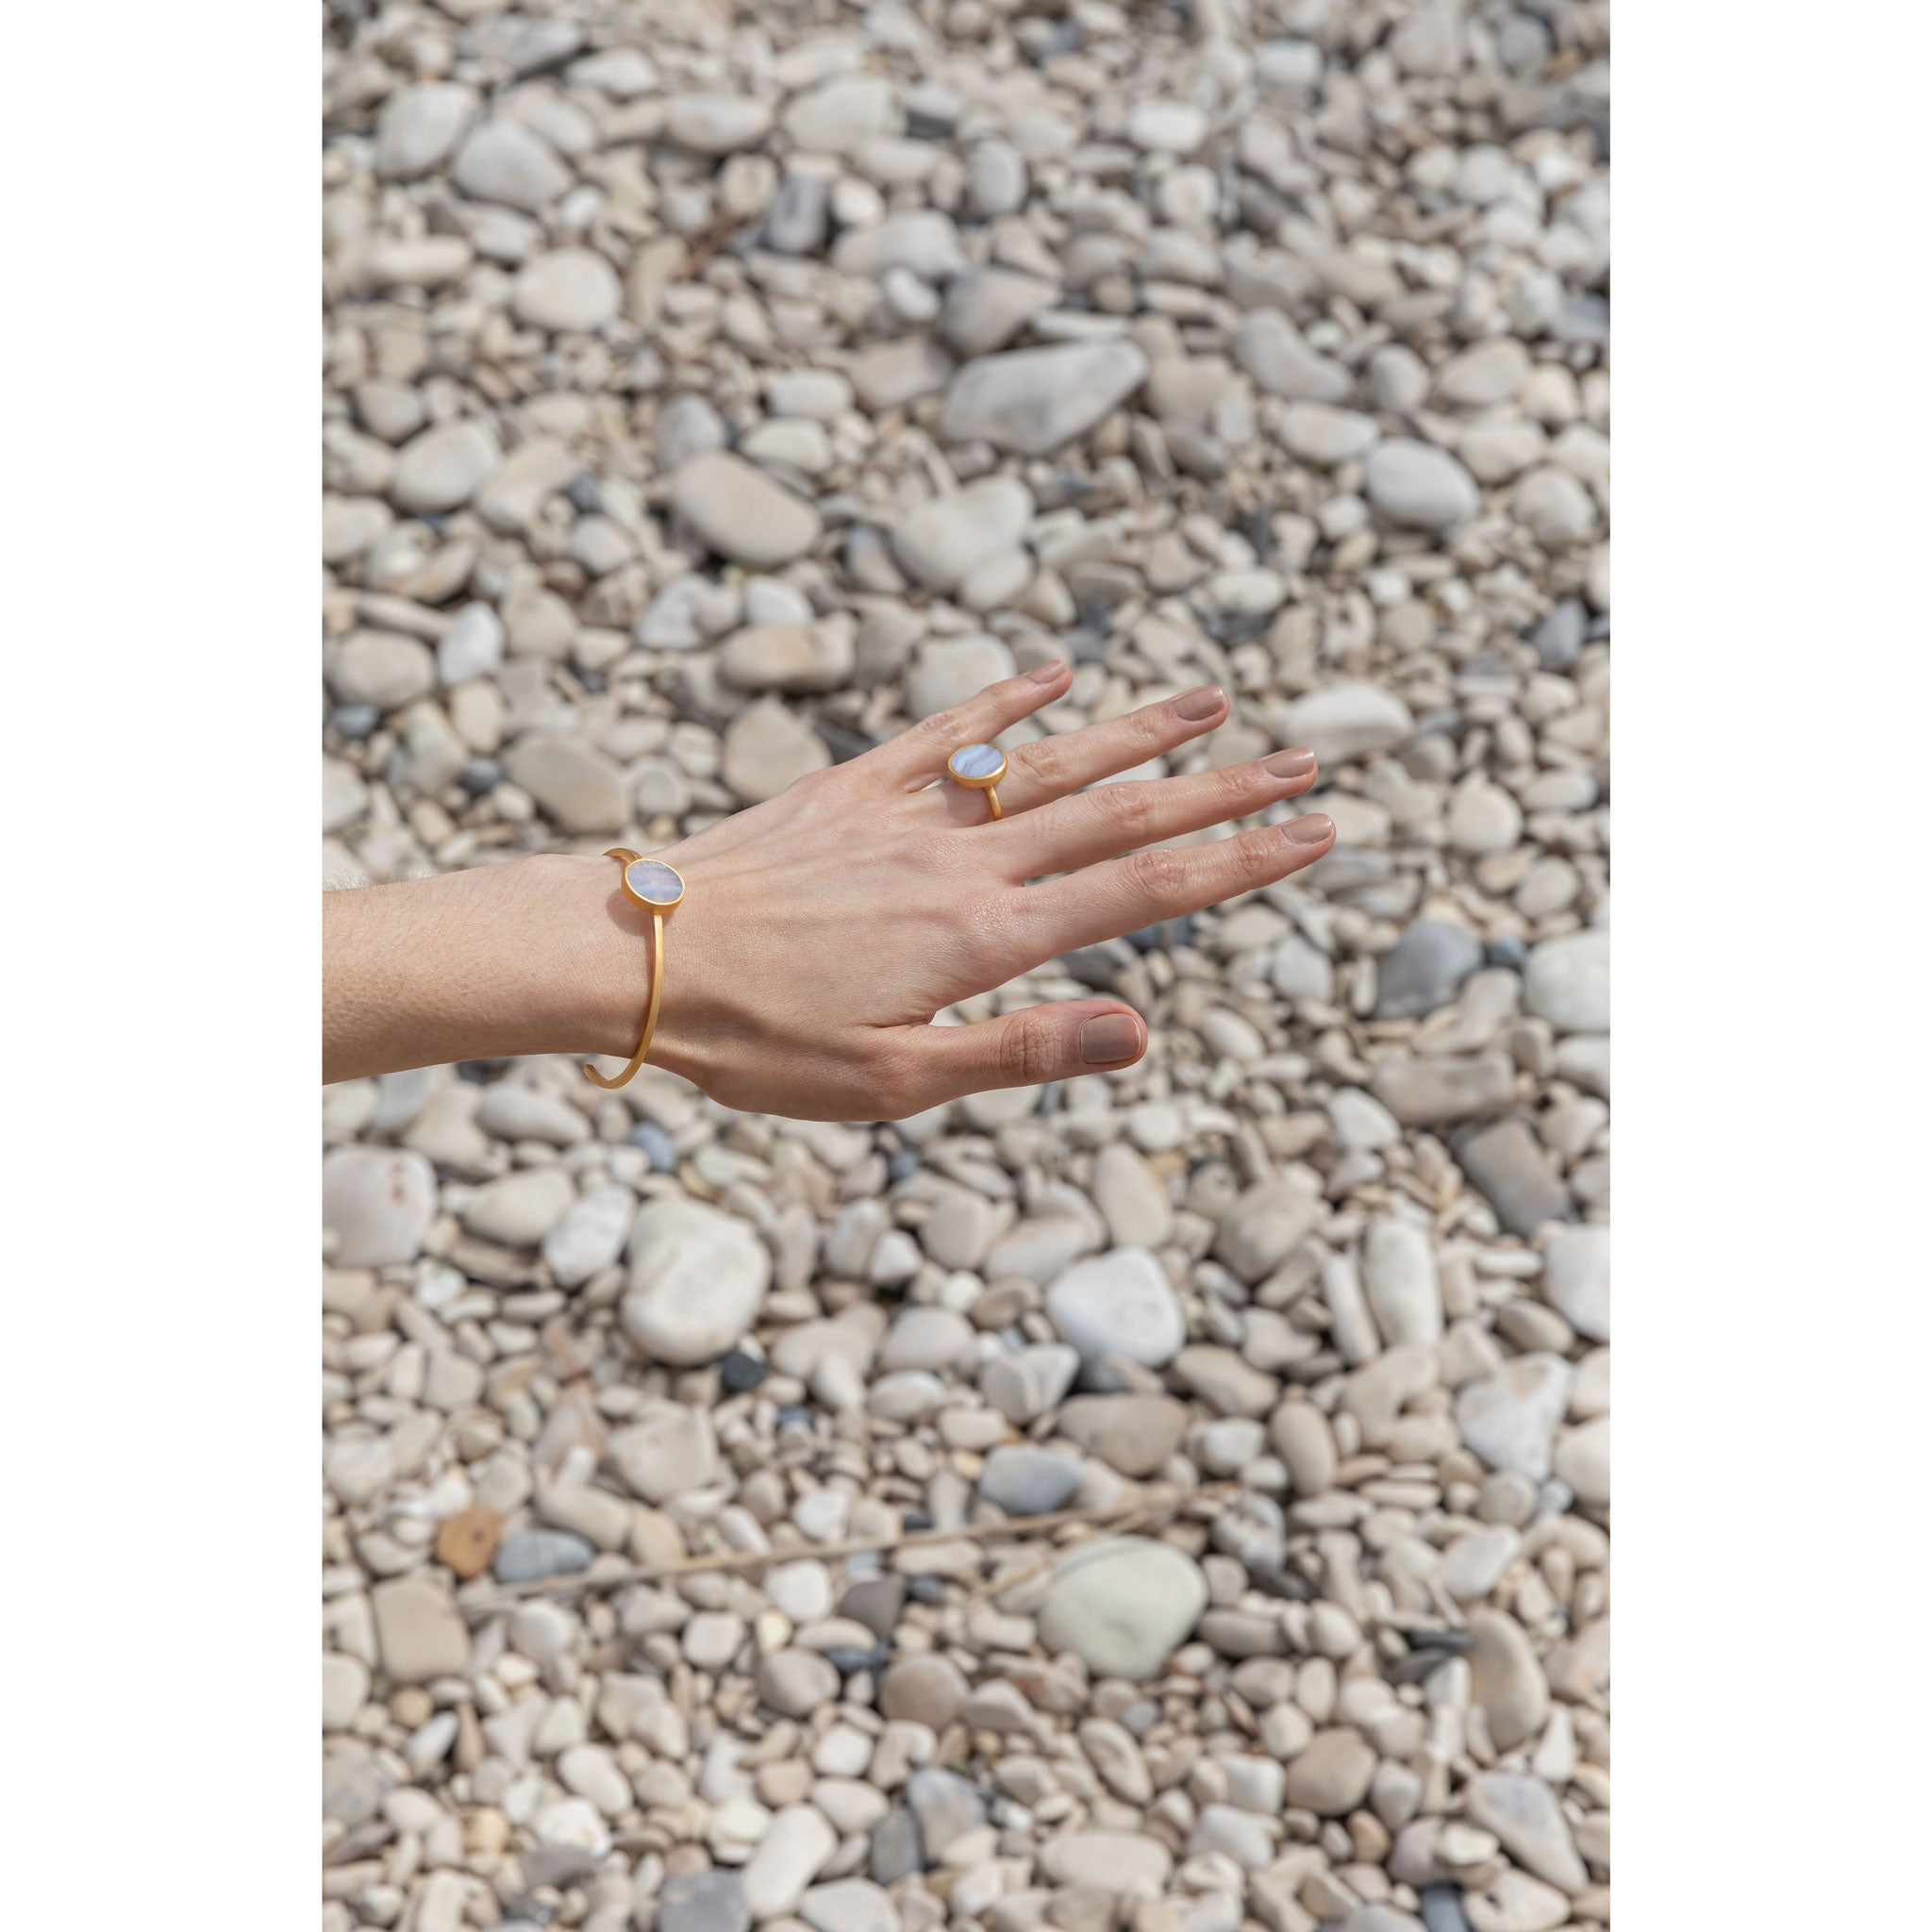 Wanderlust Life Ethically Handmade jewellery made in the UK. Minimalist gold and fine cord jewellery. solar gold cuff, blue lace agate